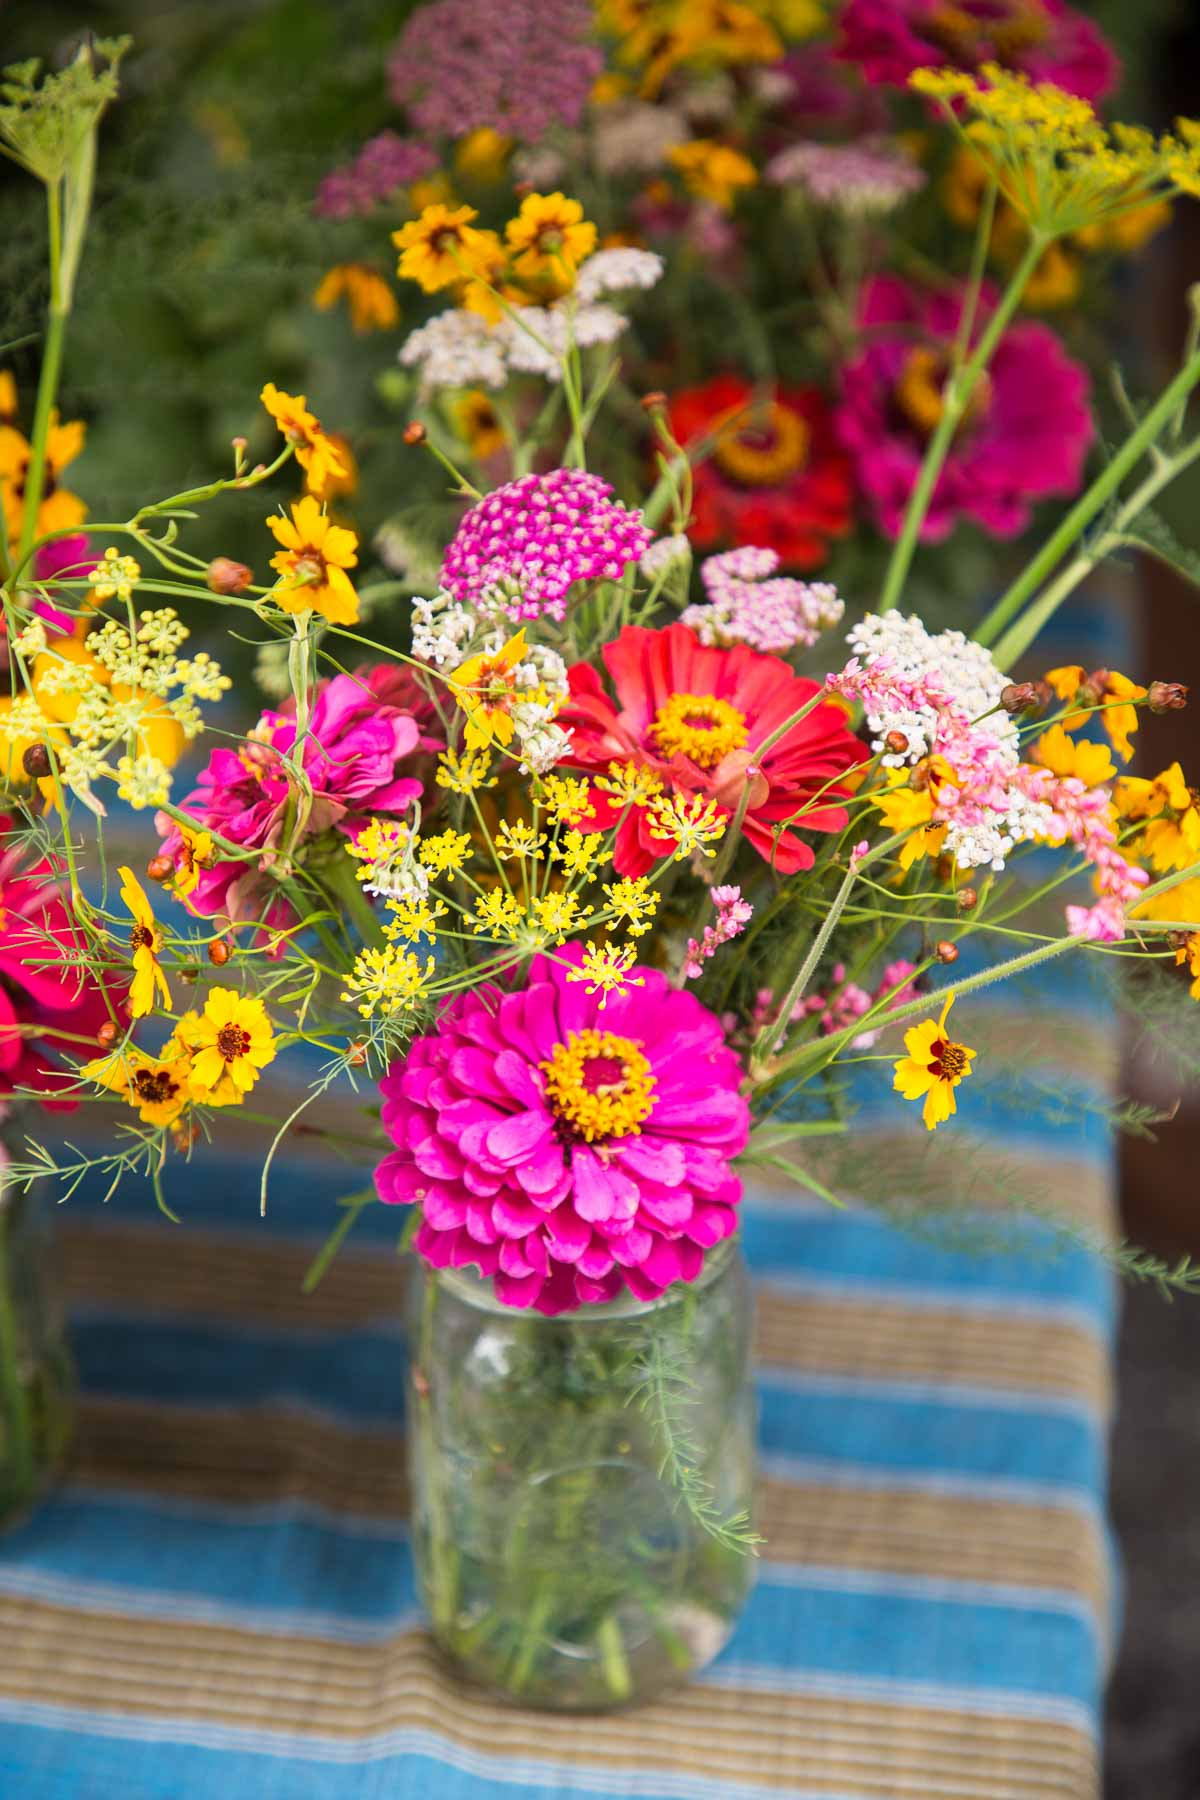 Closeup photo of western North Carolina wild flowers in a vase at a farmer's market.